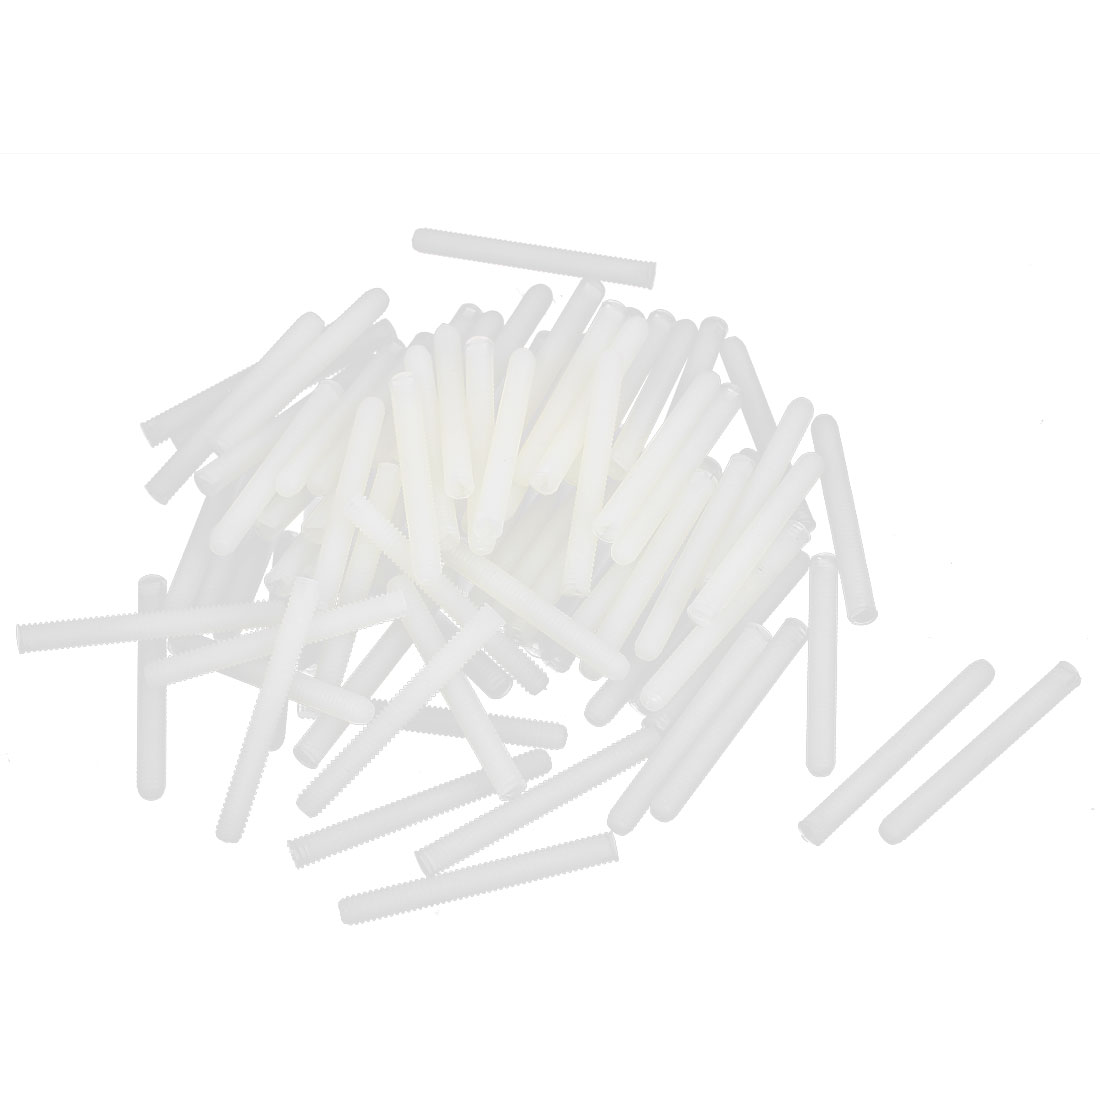 M4x35mm 0.75mm Pitch Nylon Slotted Grub Set Screw Threaded Rod Stud Beige 100Pcs